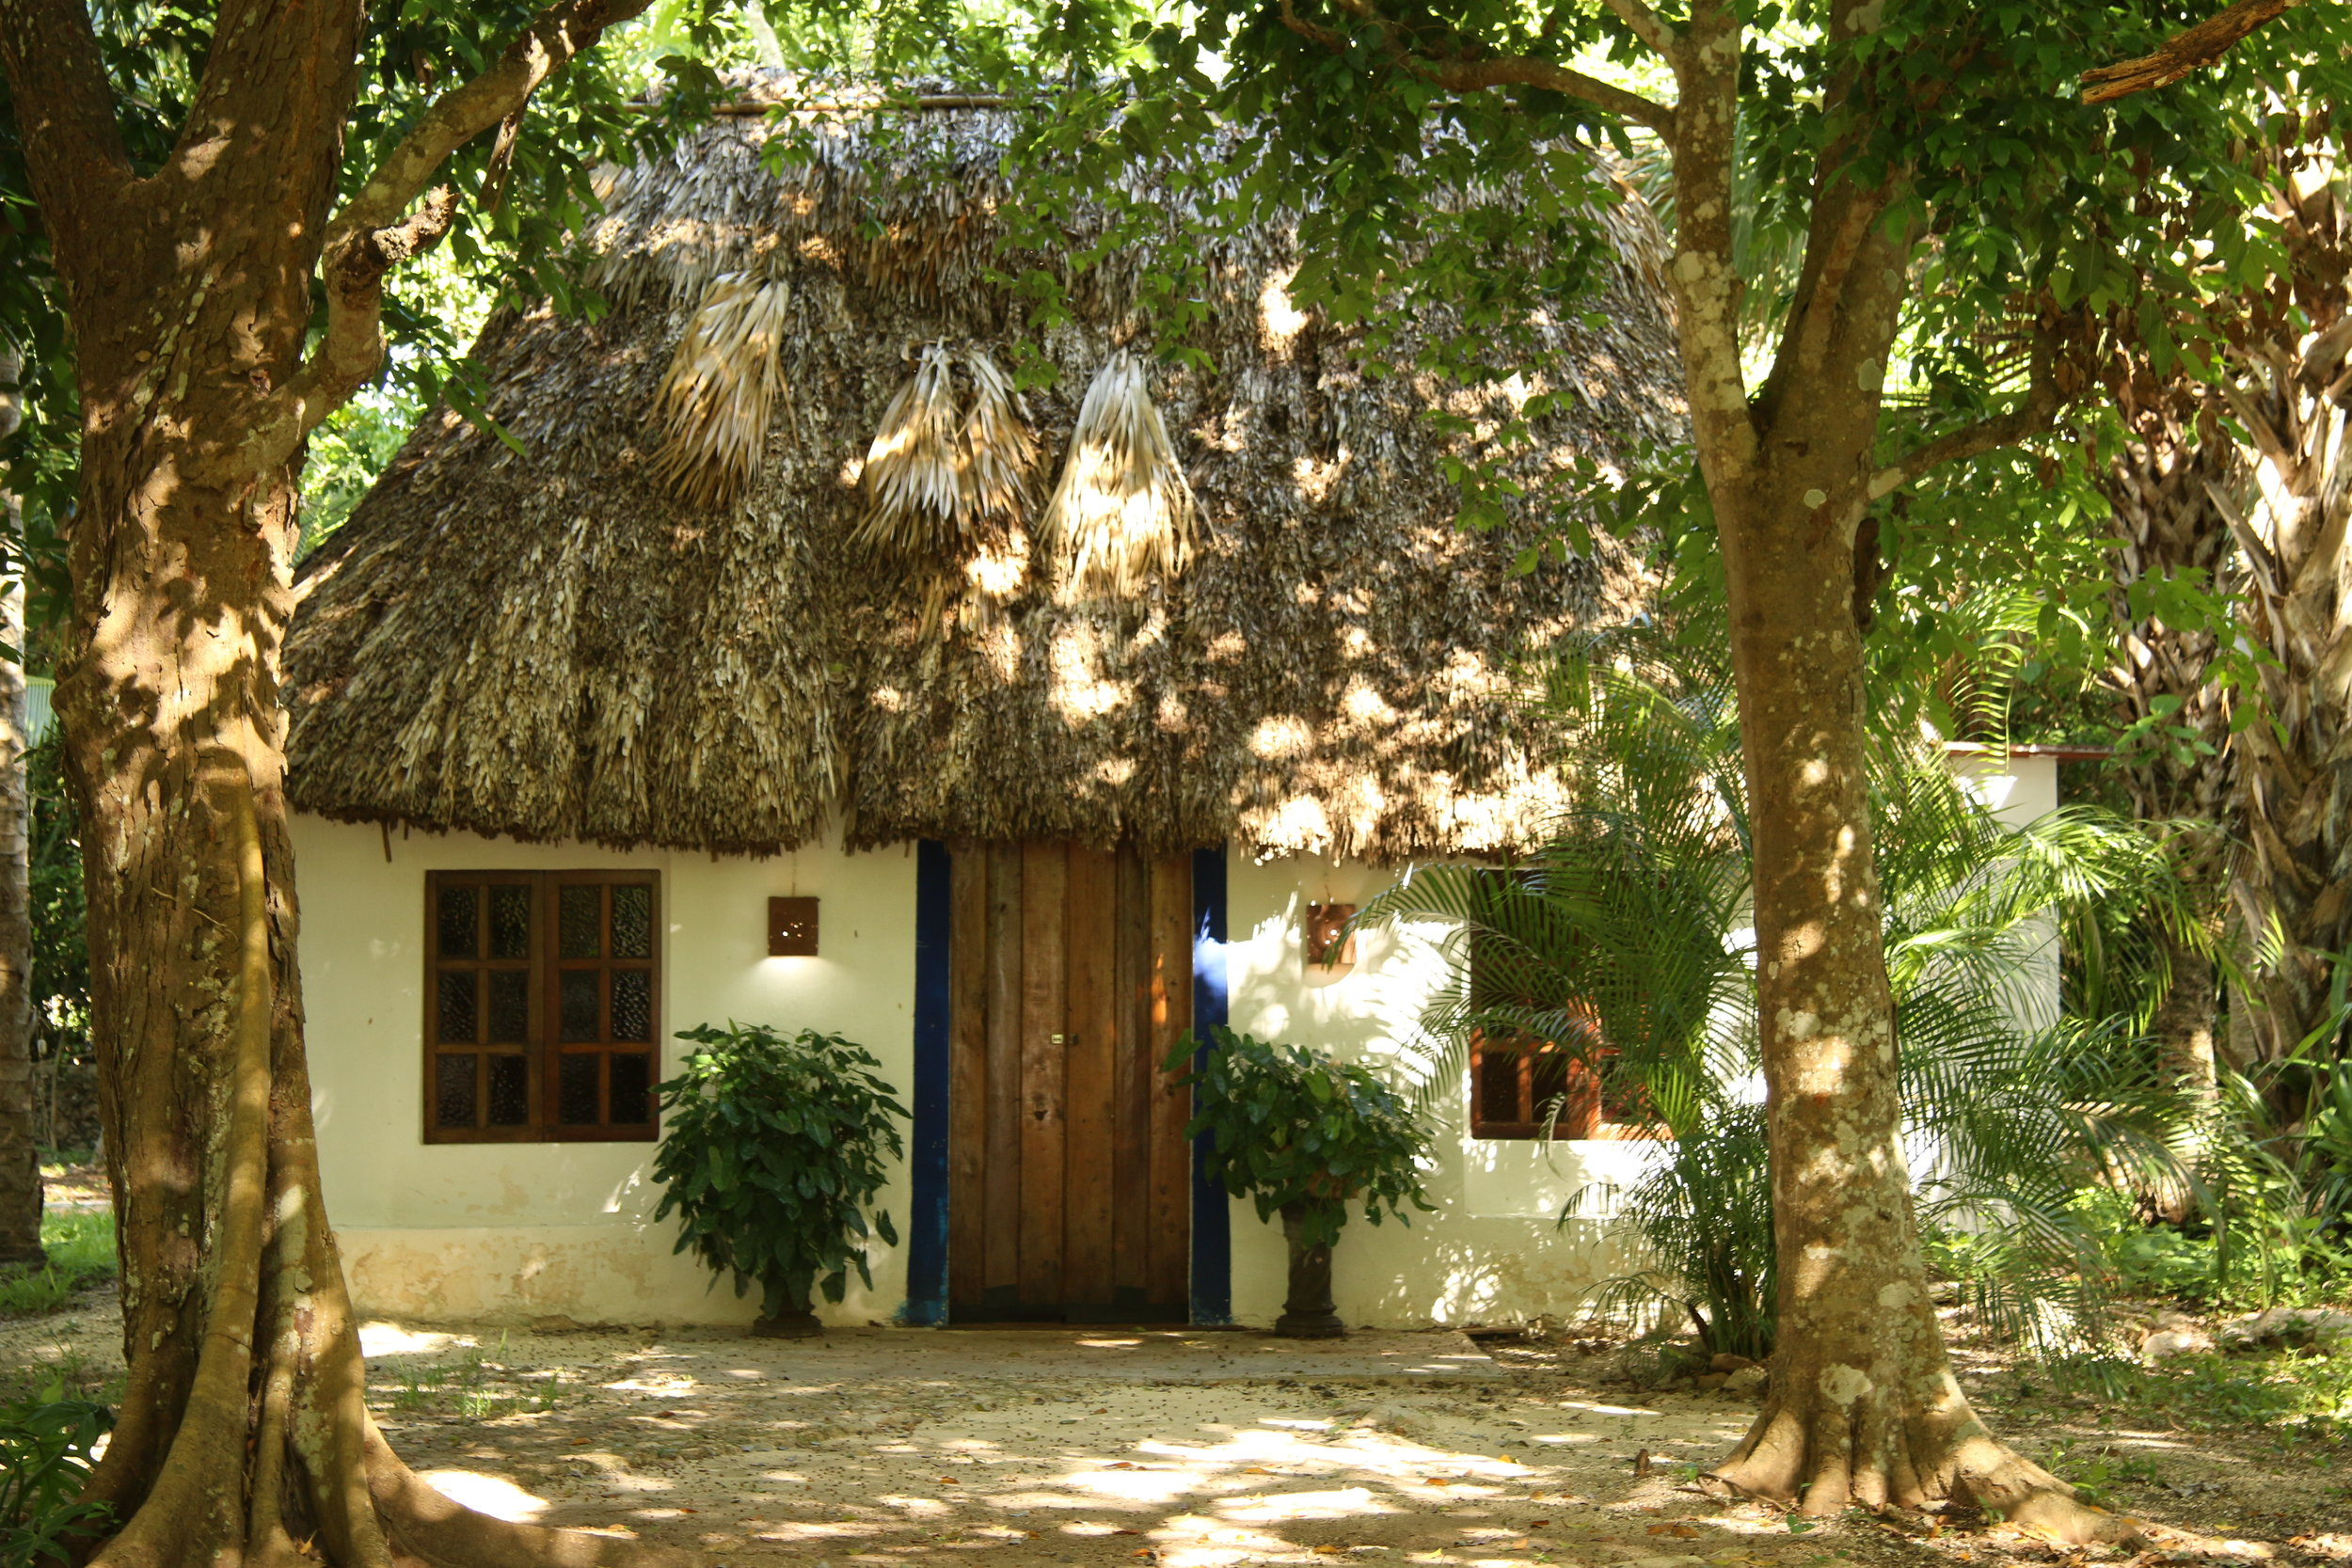 An airbnb in Akil